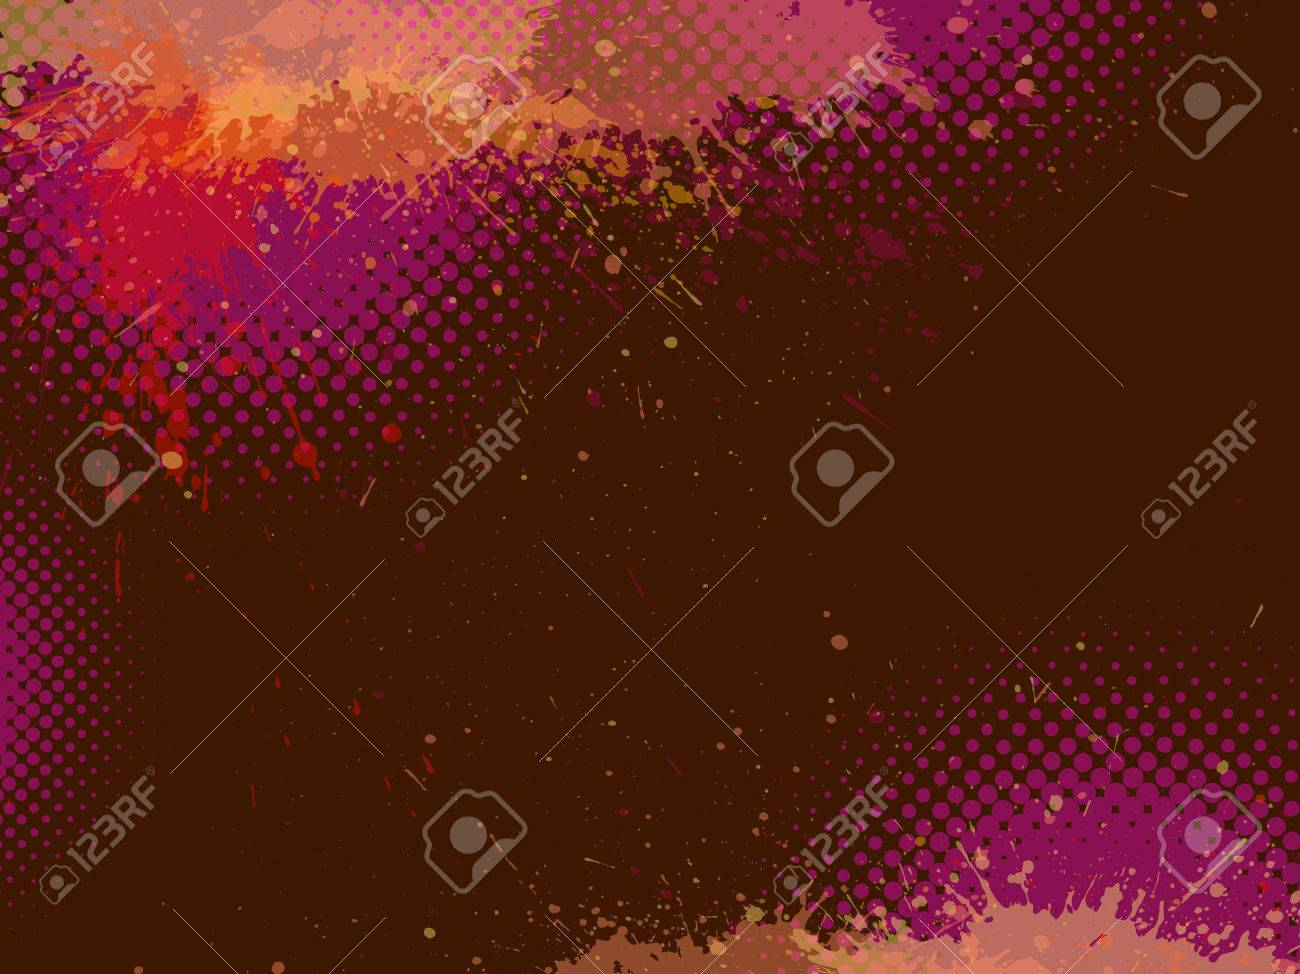 abstract grunge background - 8557883